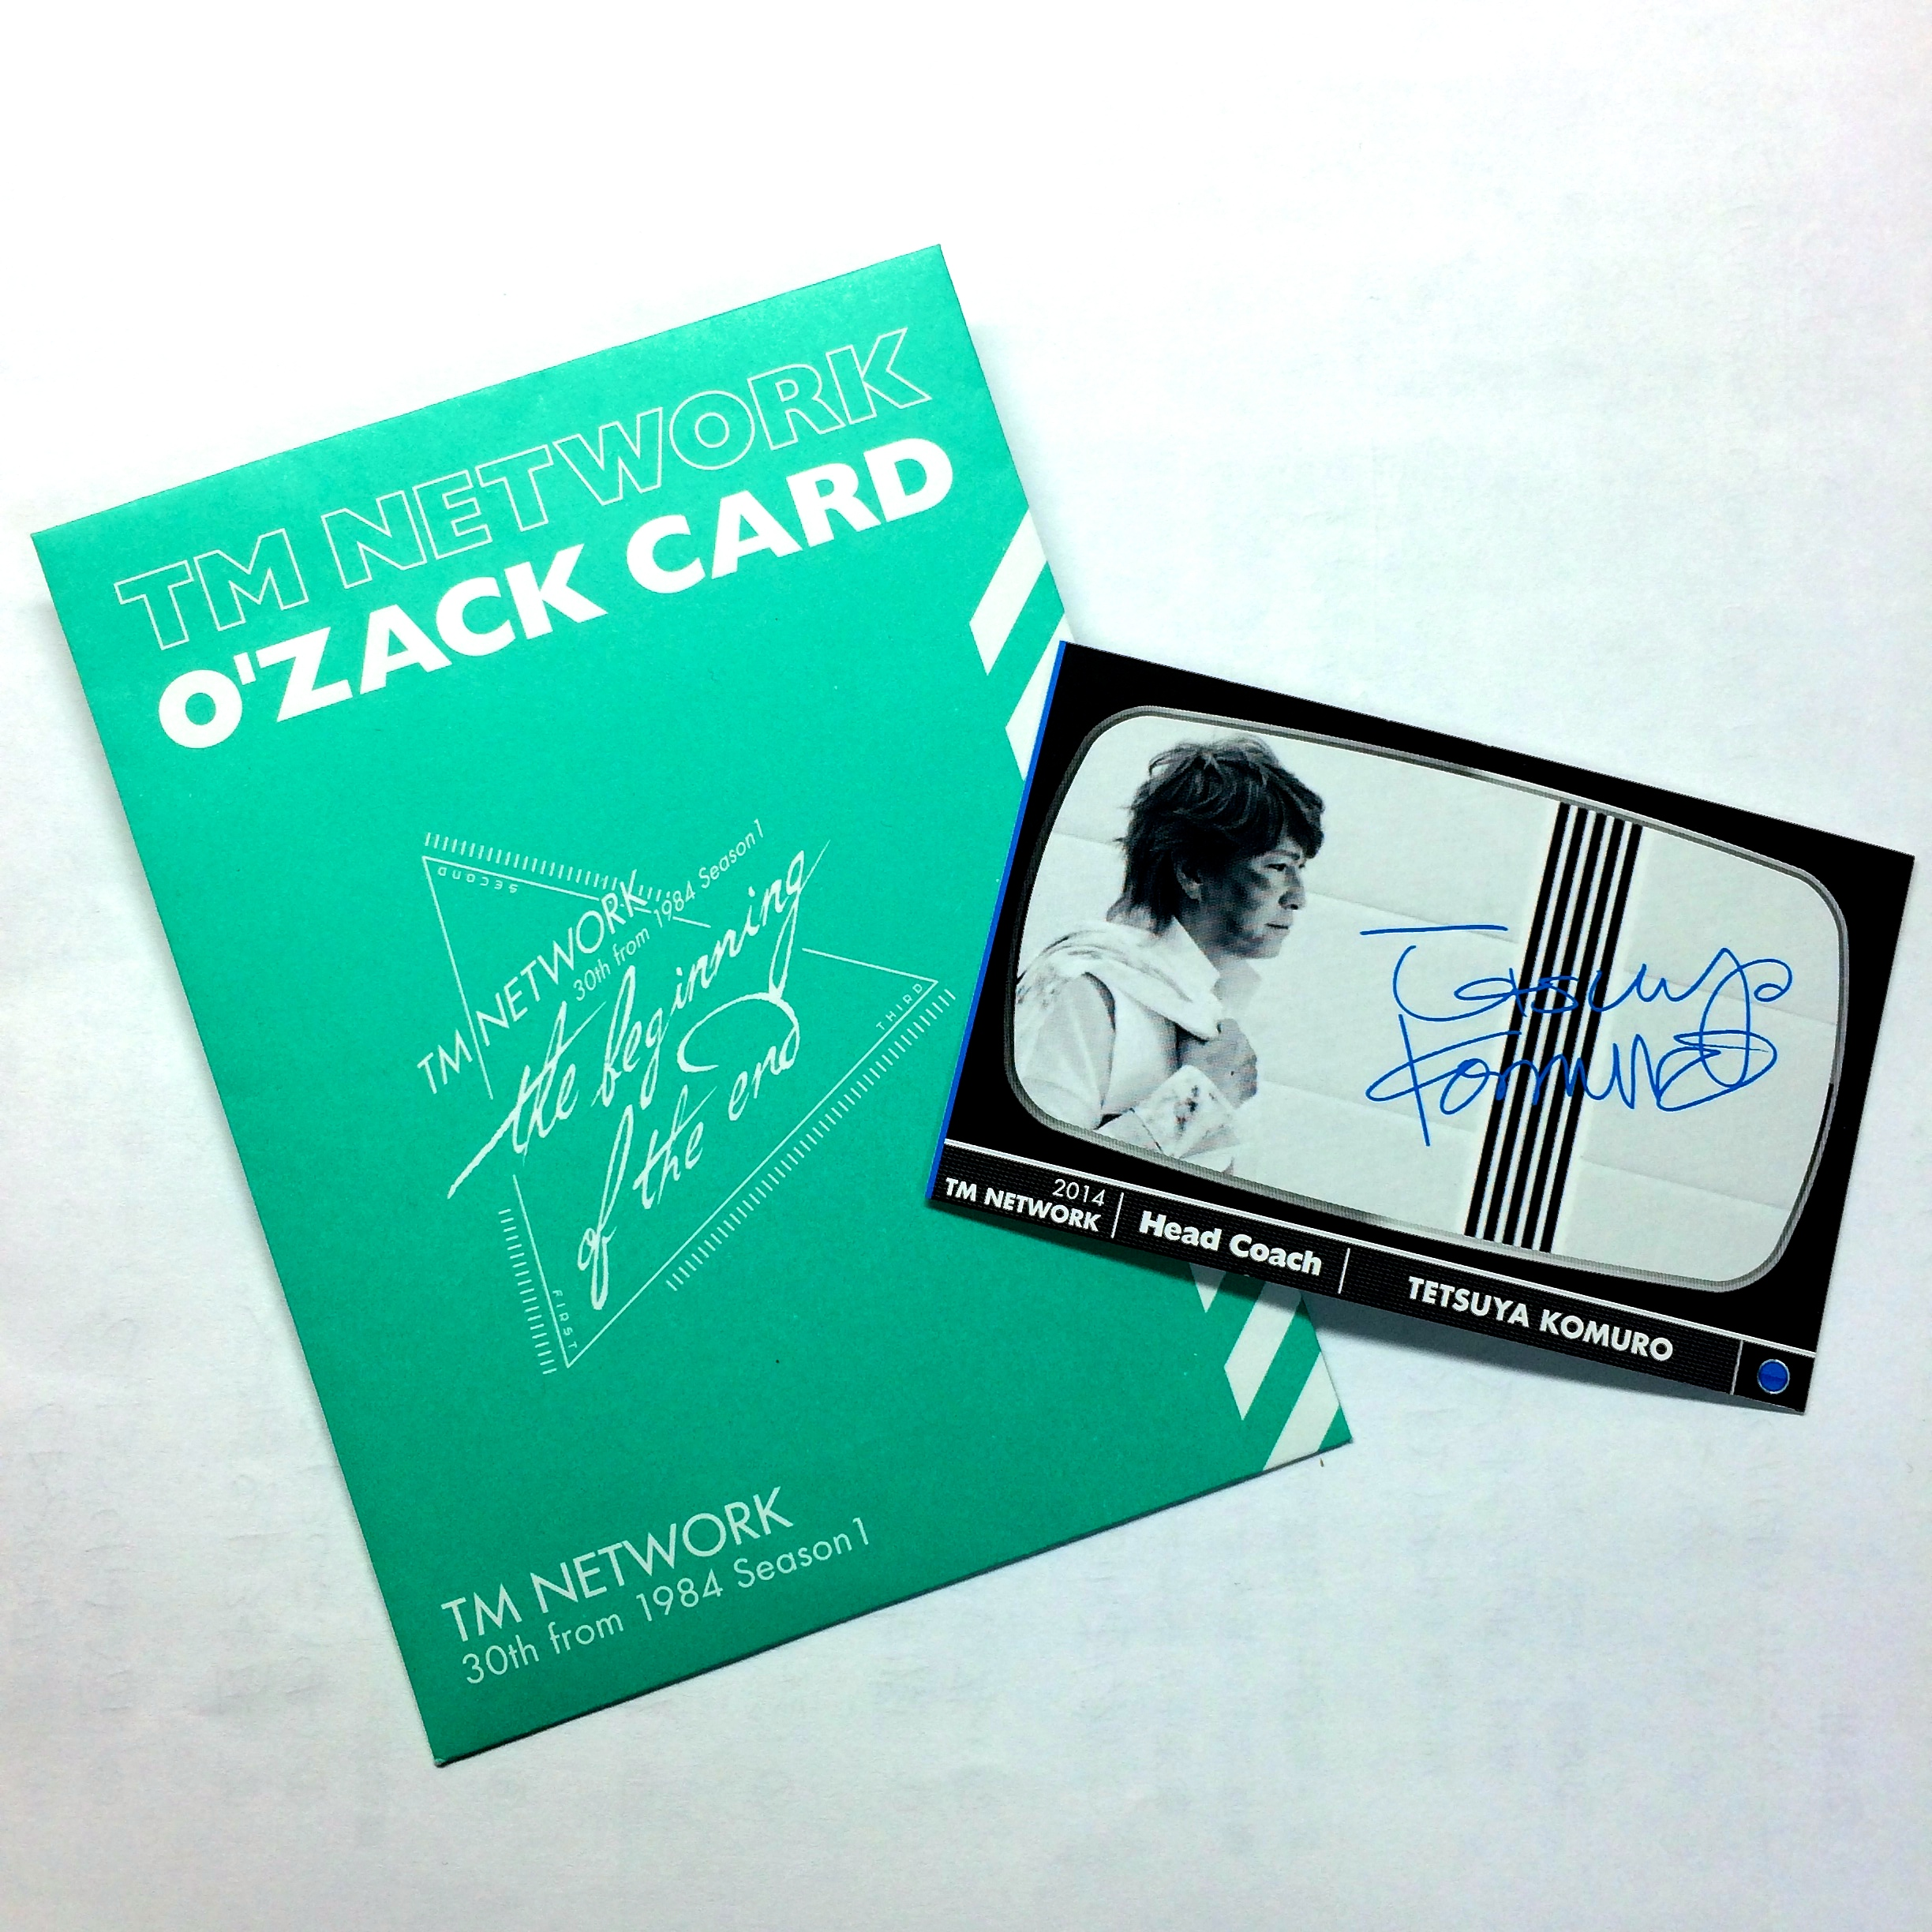 TM NETWORK O'zack Card TK ver.